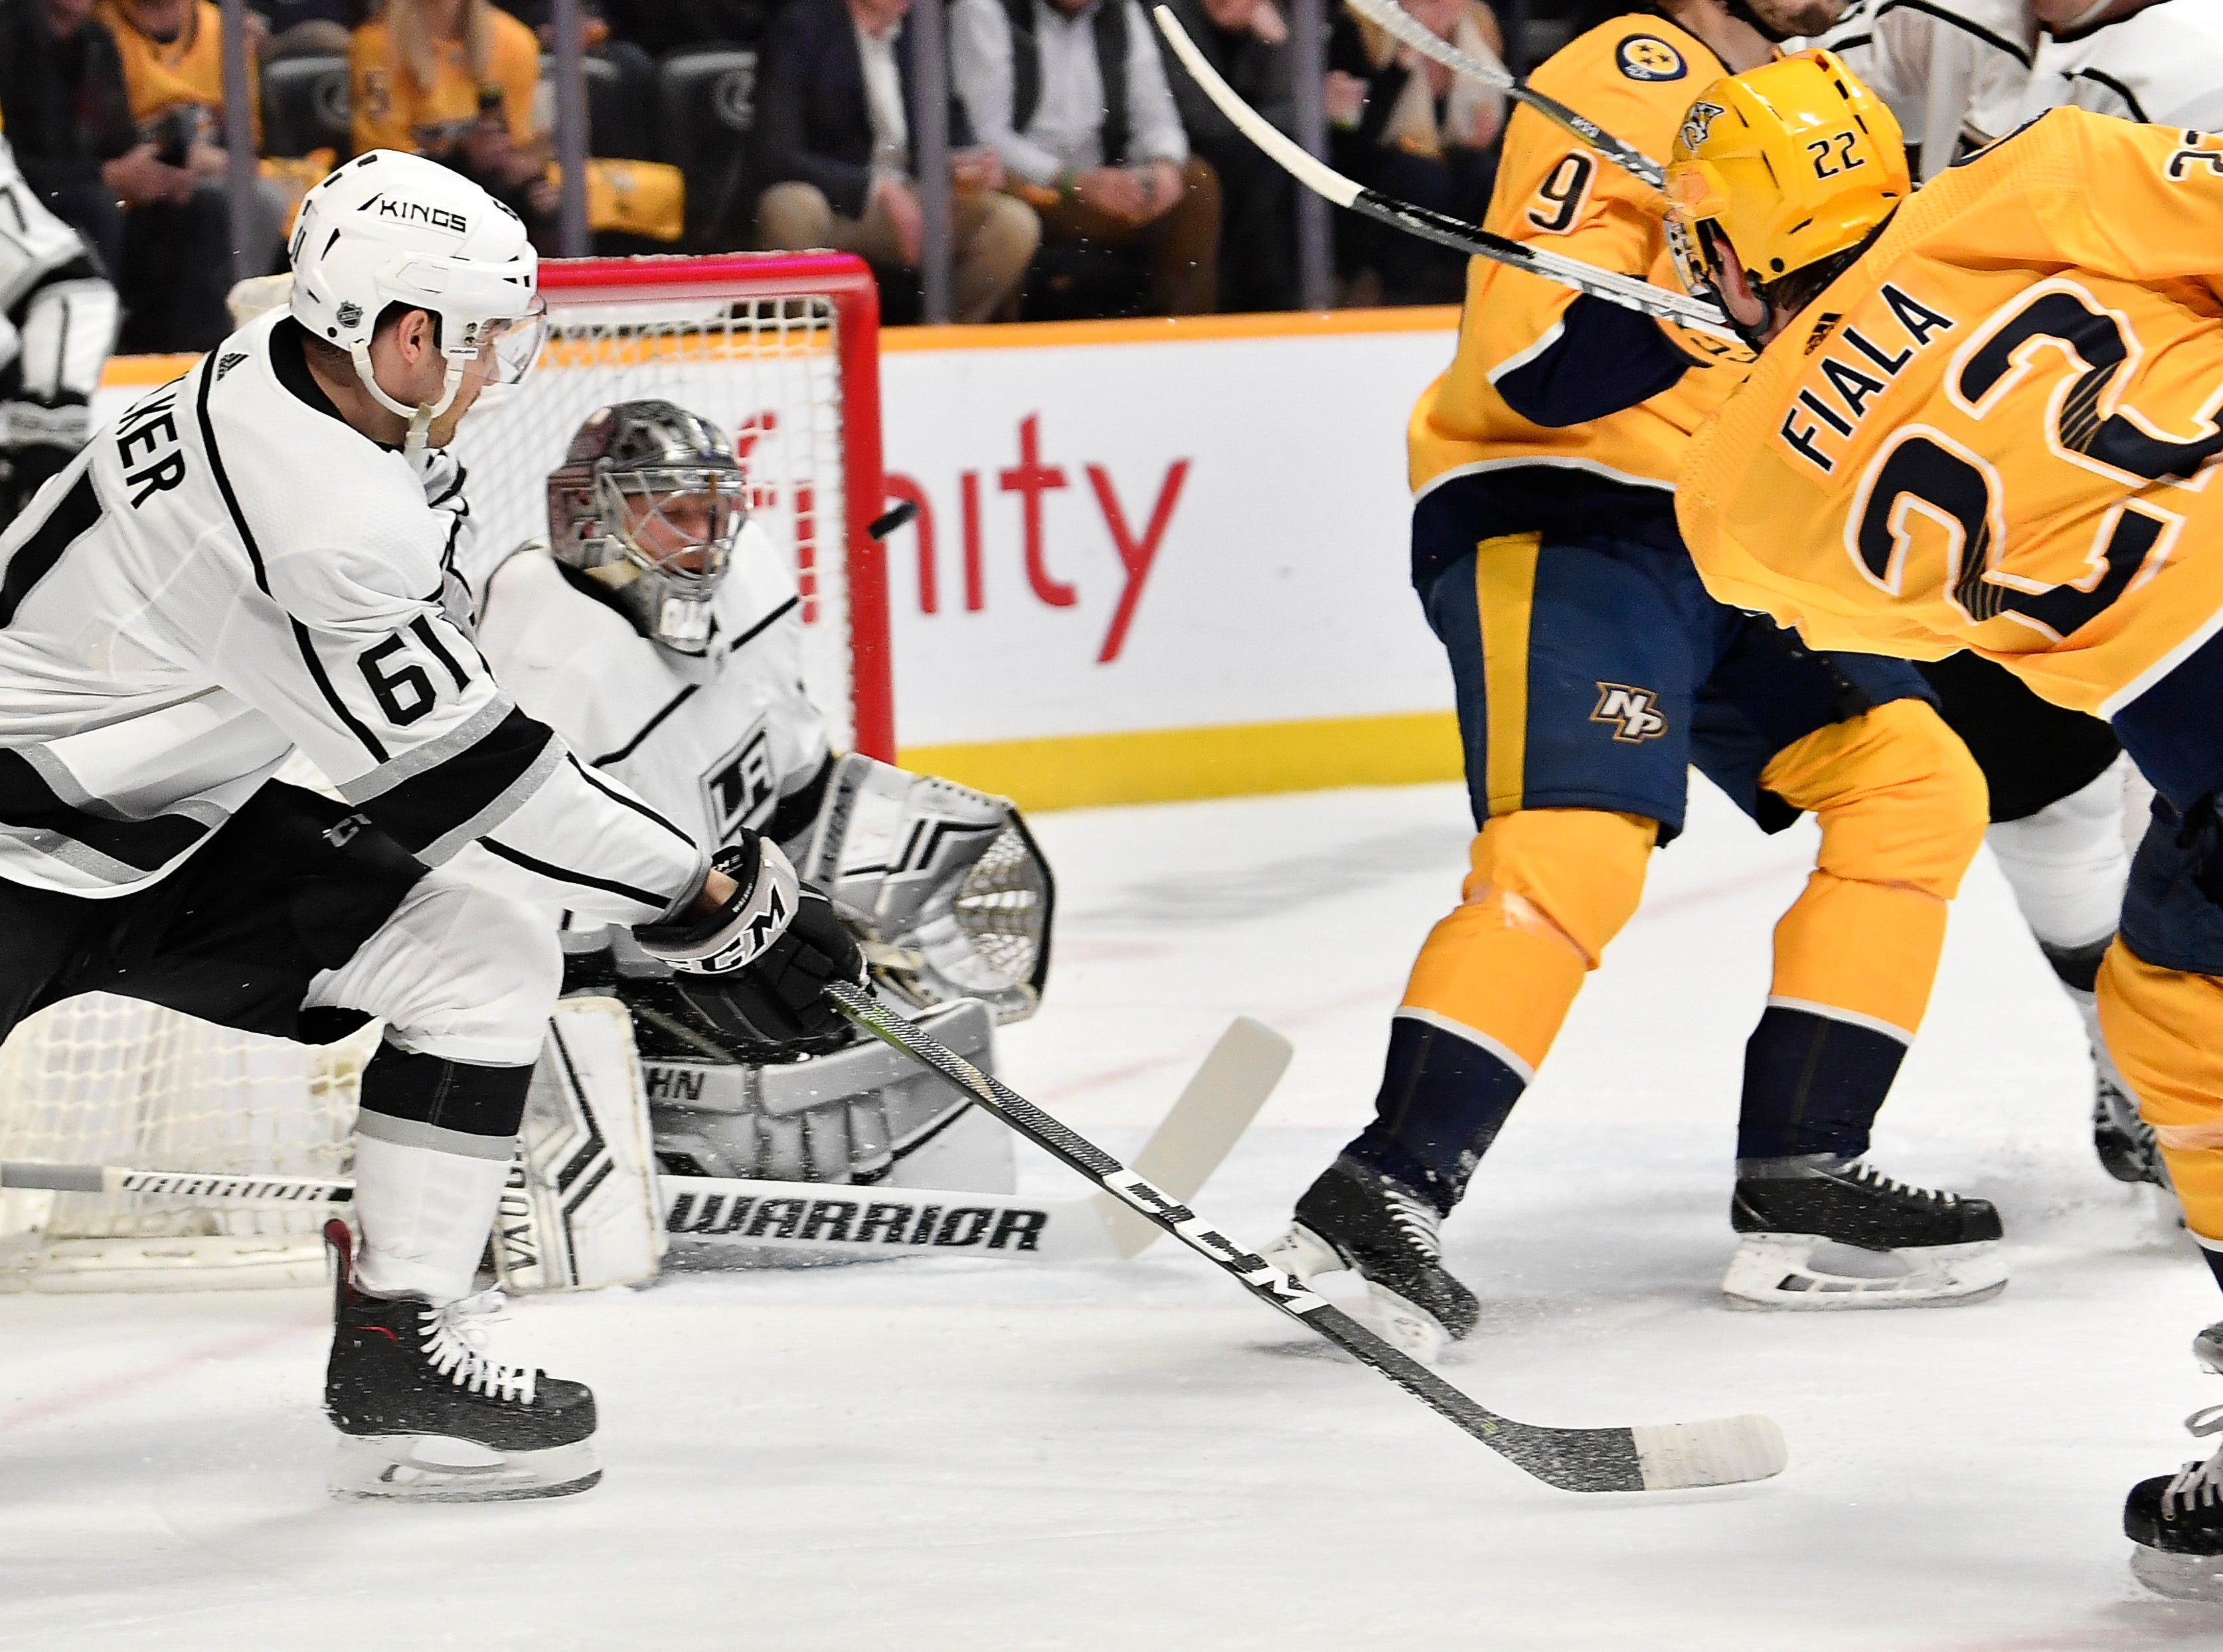 Predators left wing Kevin Fiala (22) tries to shoot the puck past Kings goaltender Jonathan Quick (32) during the first period at Bridgestone Arena Thursday, Feb. 21, 2019 in Nashville, Tenn.